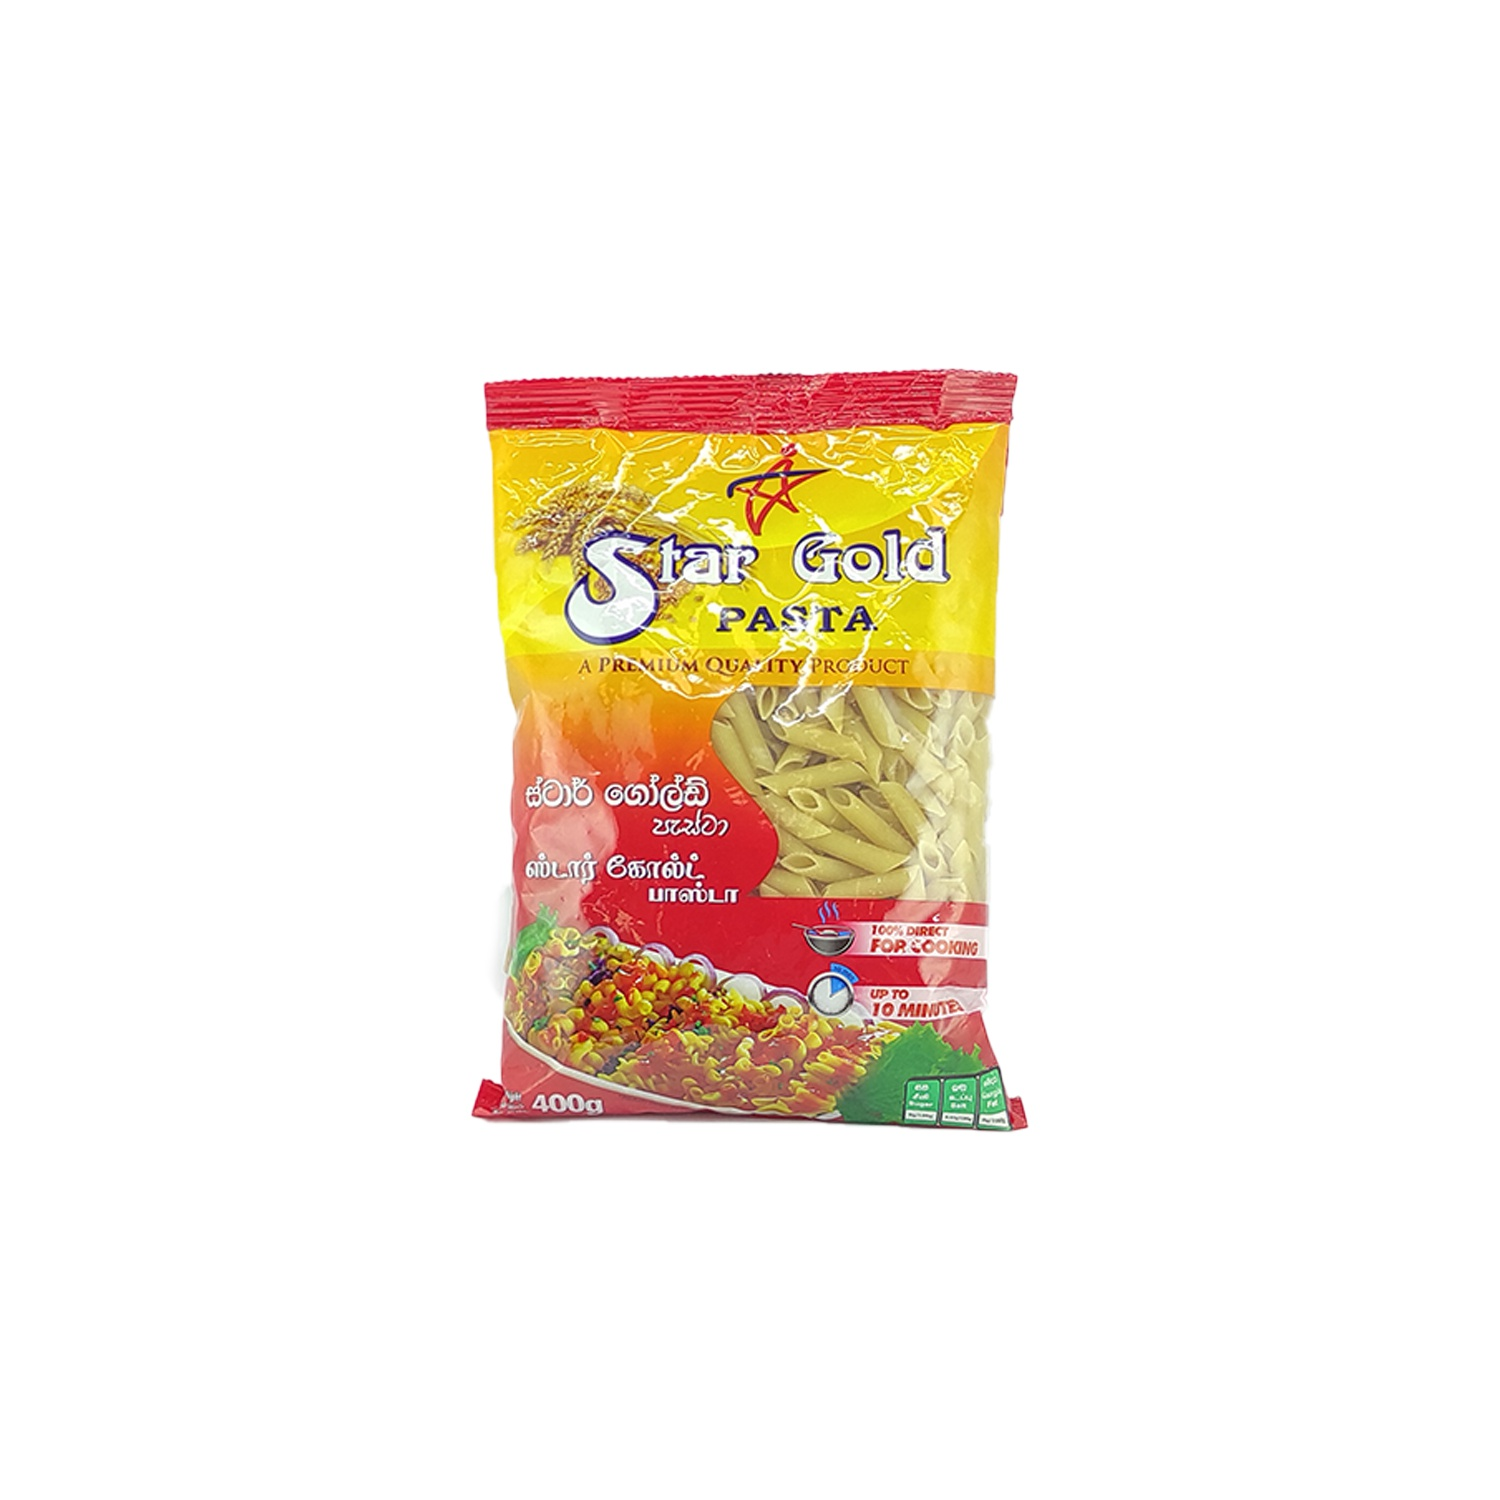 Star Gold Pasta Penne 400G - in Sri Lanka